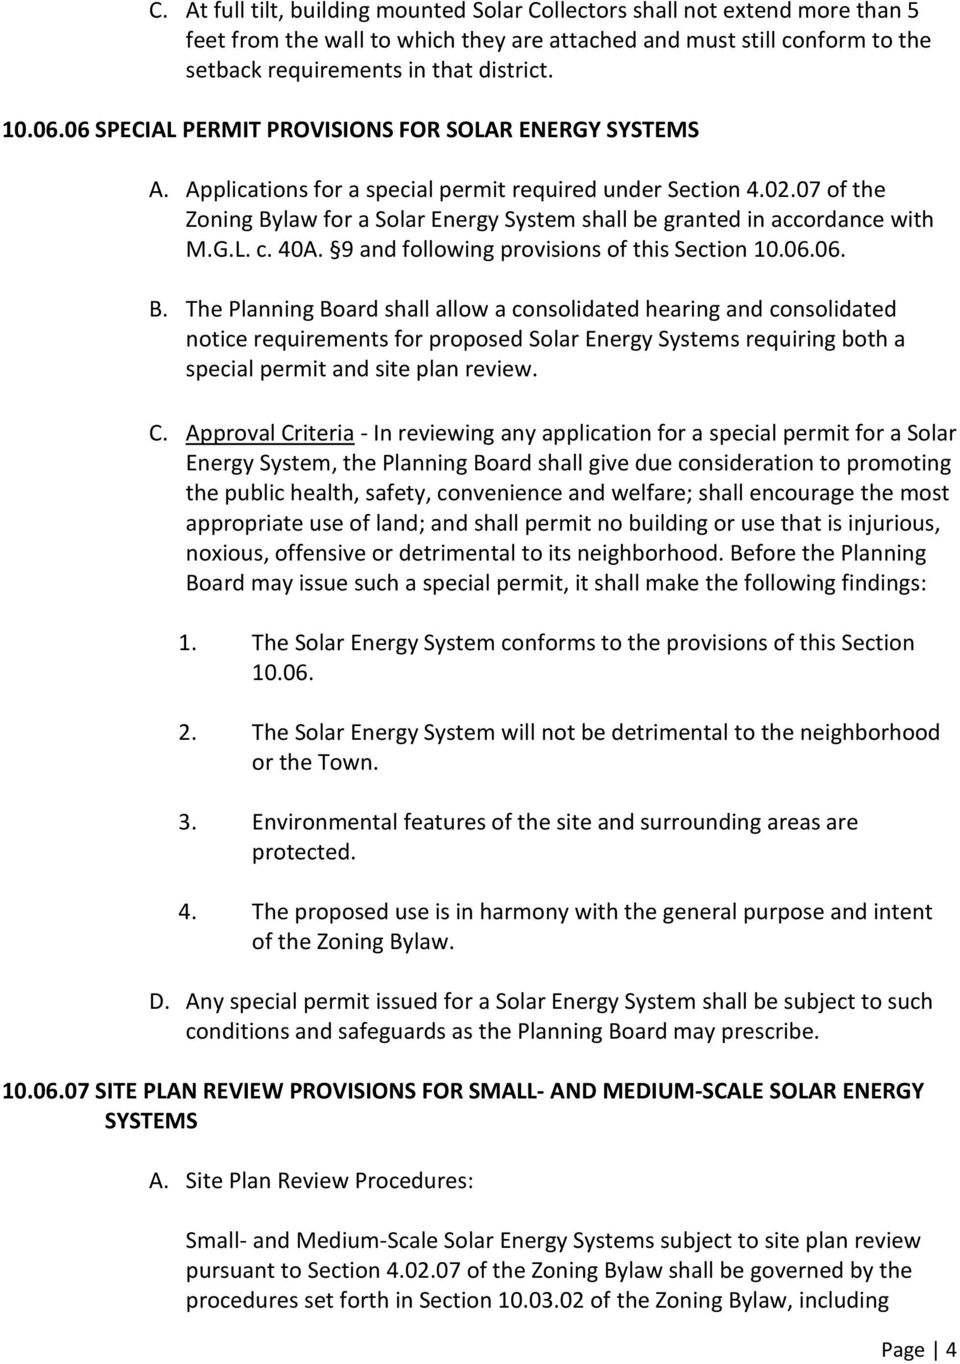 07 of the Zoning Bylaw for a Solar Energy System shall be granted in accordance with M.G.L. c. 40A. 9 and following provisions of this Section 10.06.06. B. The Planning Board shall allow a consolidated hearing and consolidated notice requirements for proposed Solar Energy Systems requiring both a special permit and site plan review.